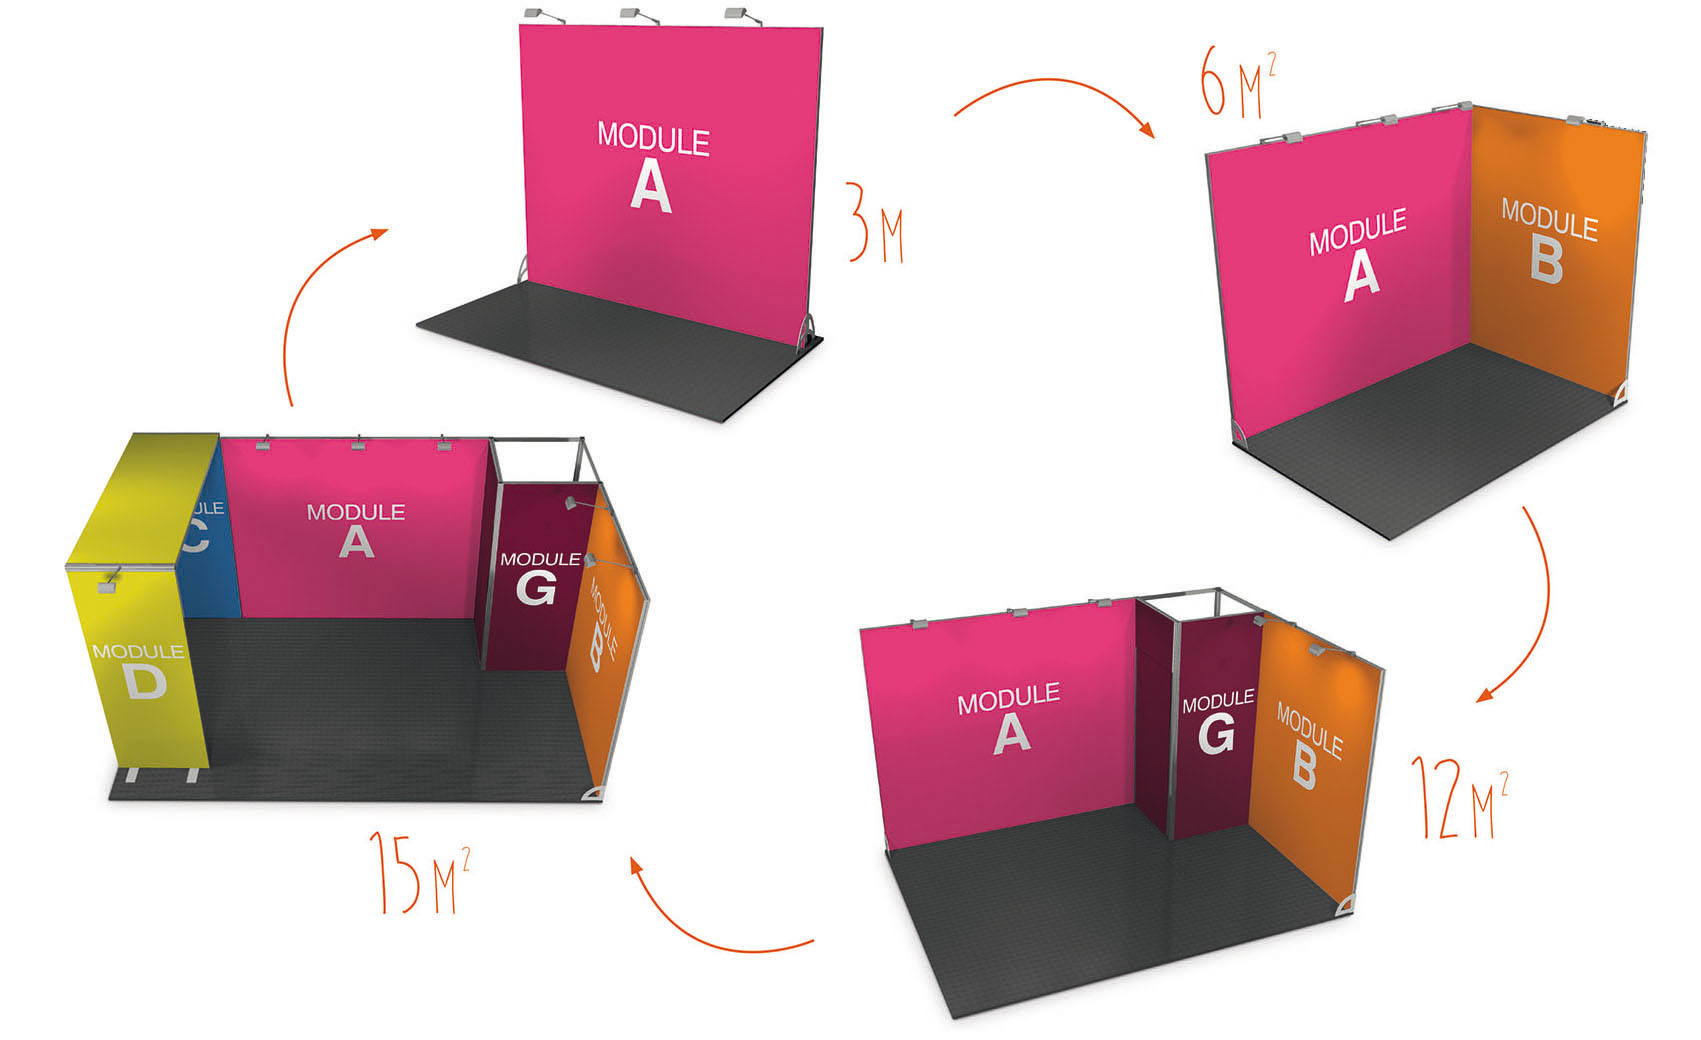 stand-modulaire-le-Vector-stand3d